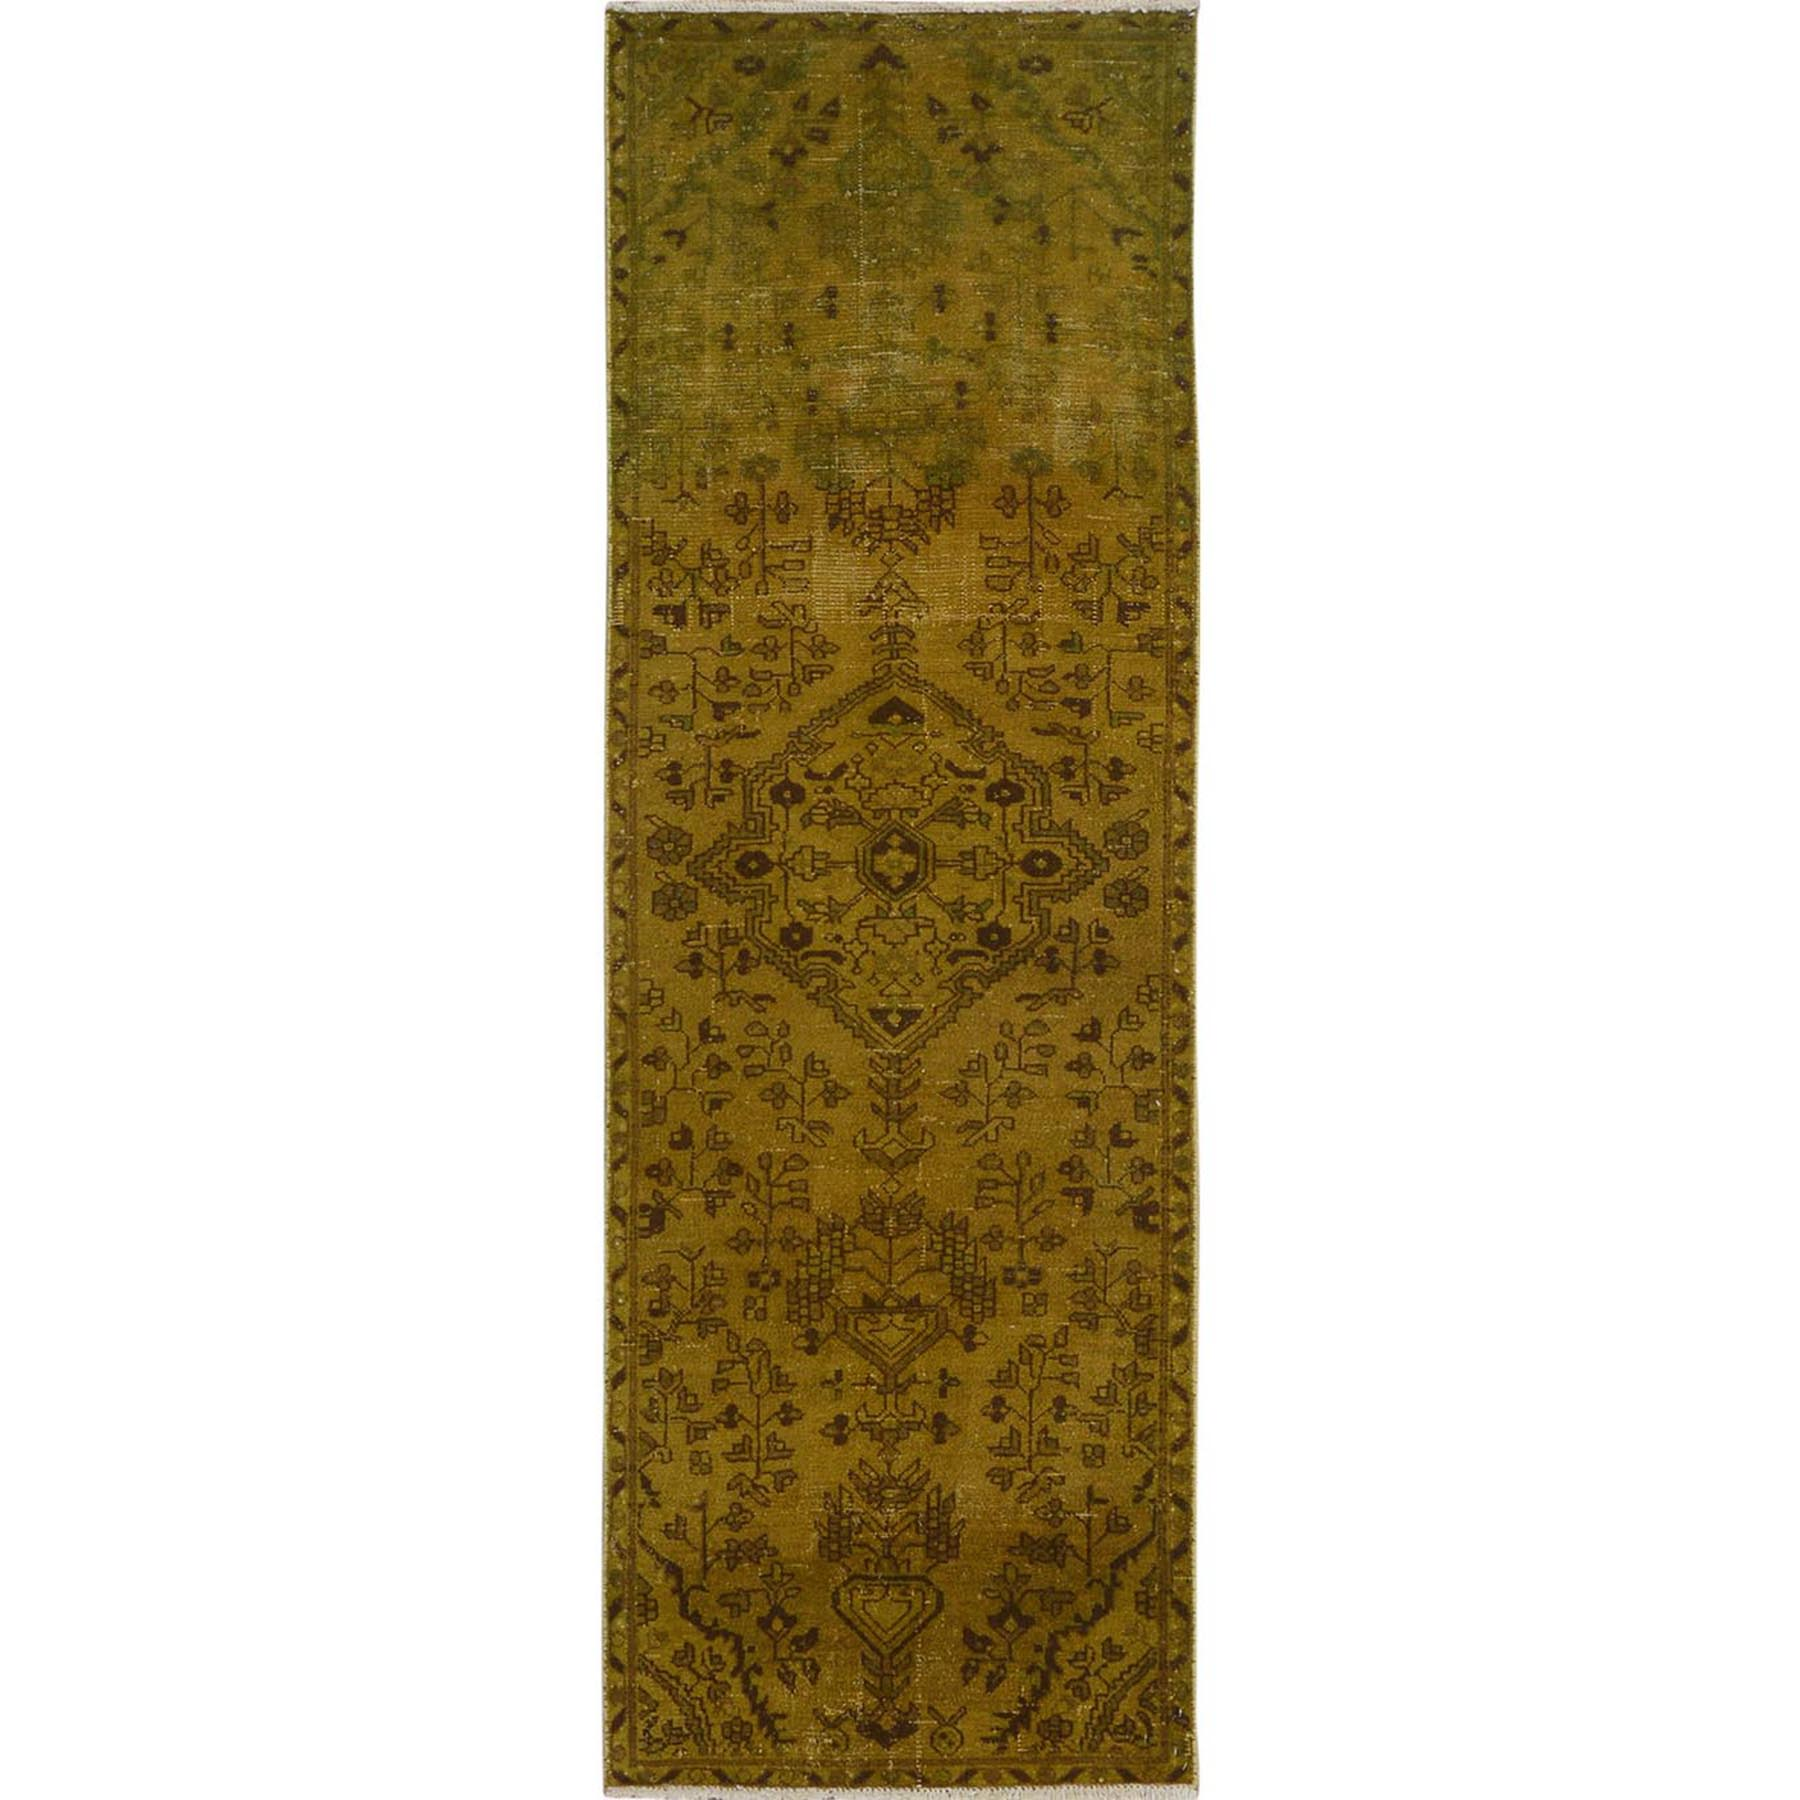 "2'9""x8'6"" Gold Green Overdyed and Vintage Worn Down Persian Bibikabad Runner Hand Woven Oriental Rug"